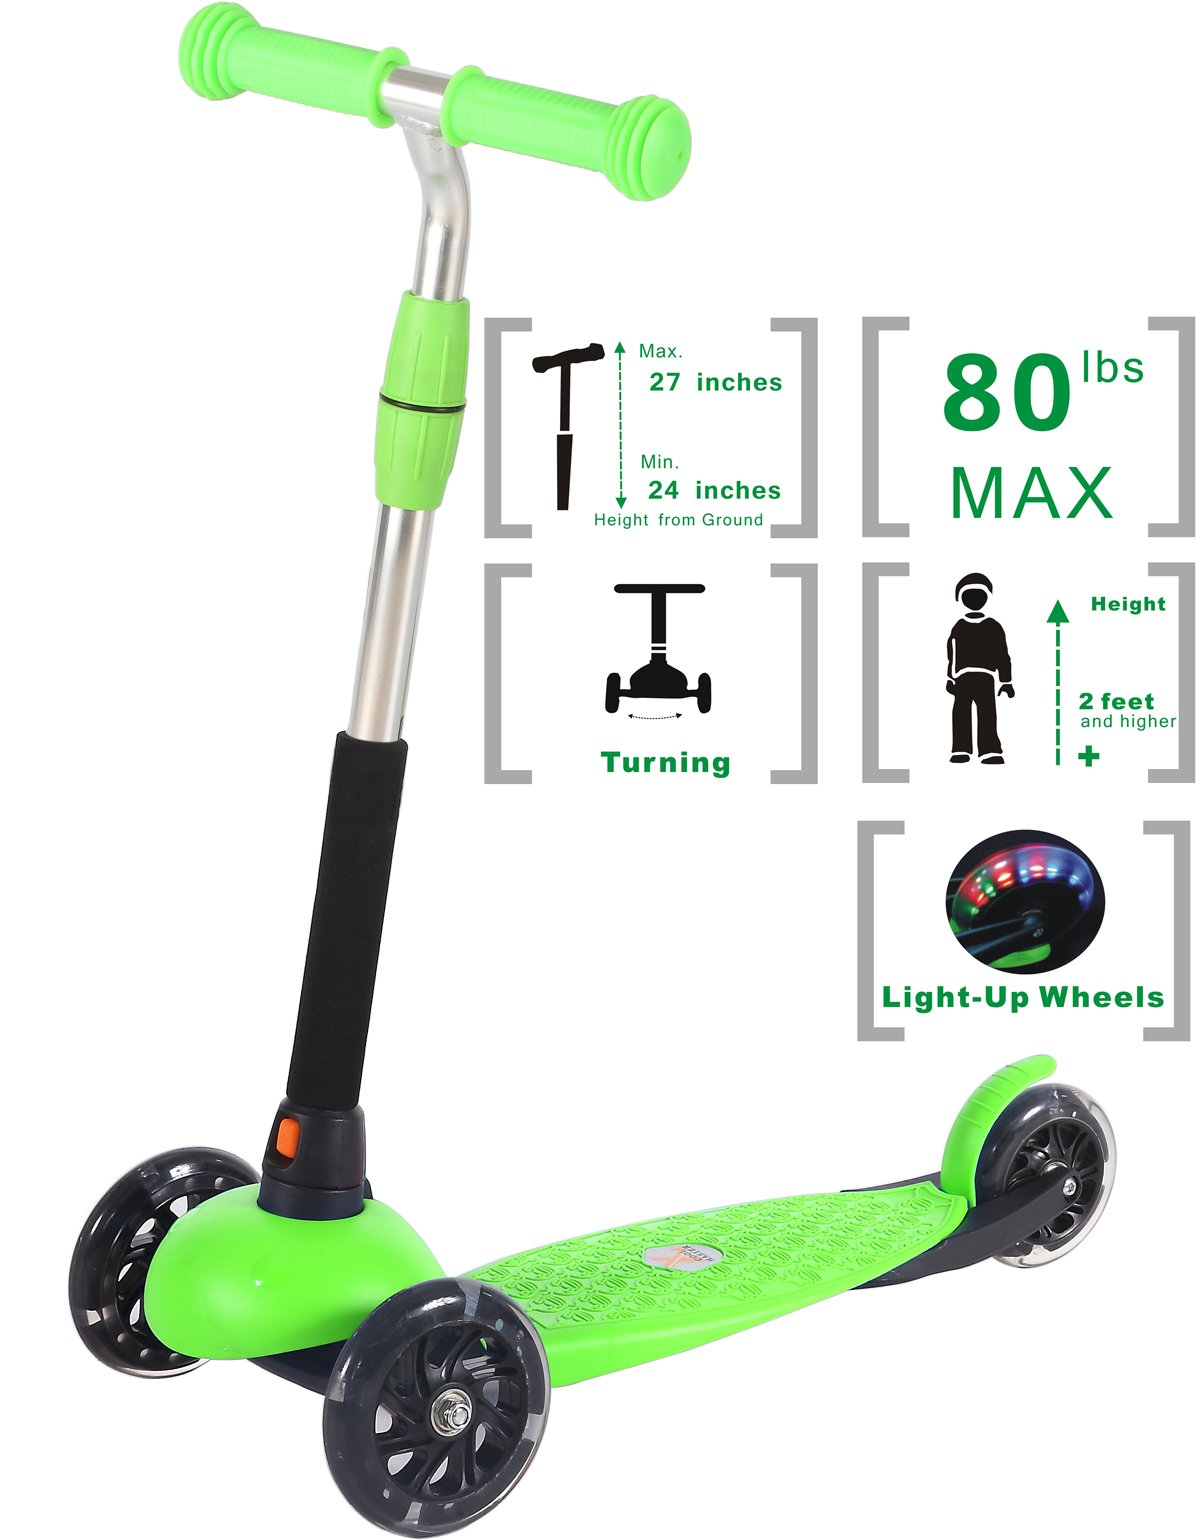 Voyage Sports Green Kick Scooter for Toddler and Kids, Kids Scooter for Girls 3 Wheels, Kid Scooter with Light up Wheels for Boys by Voyage Sports